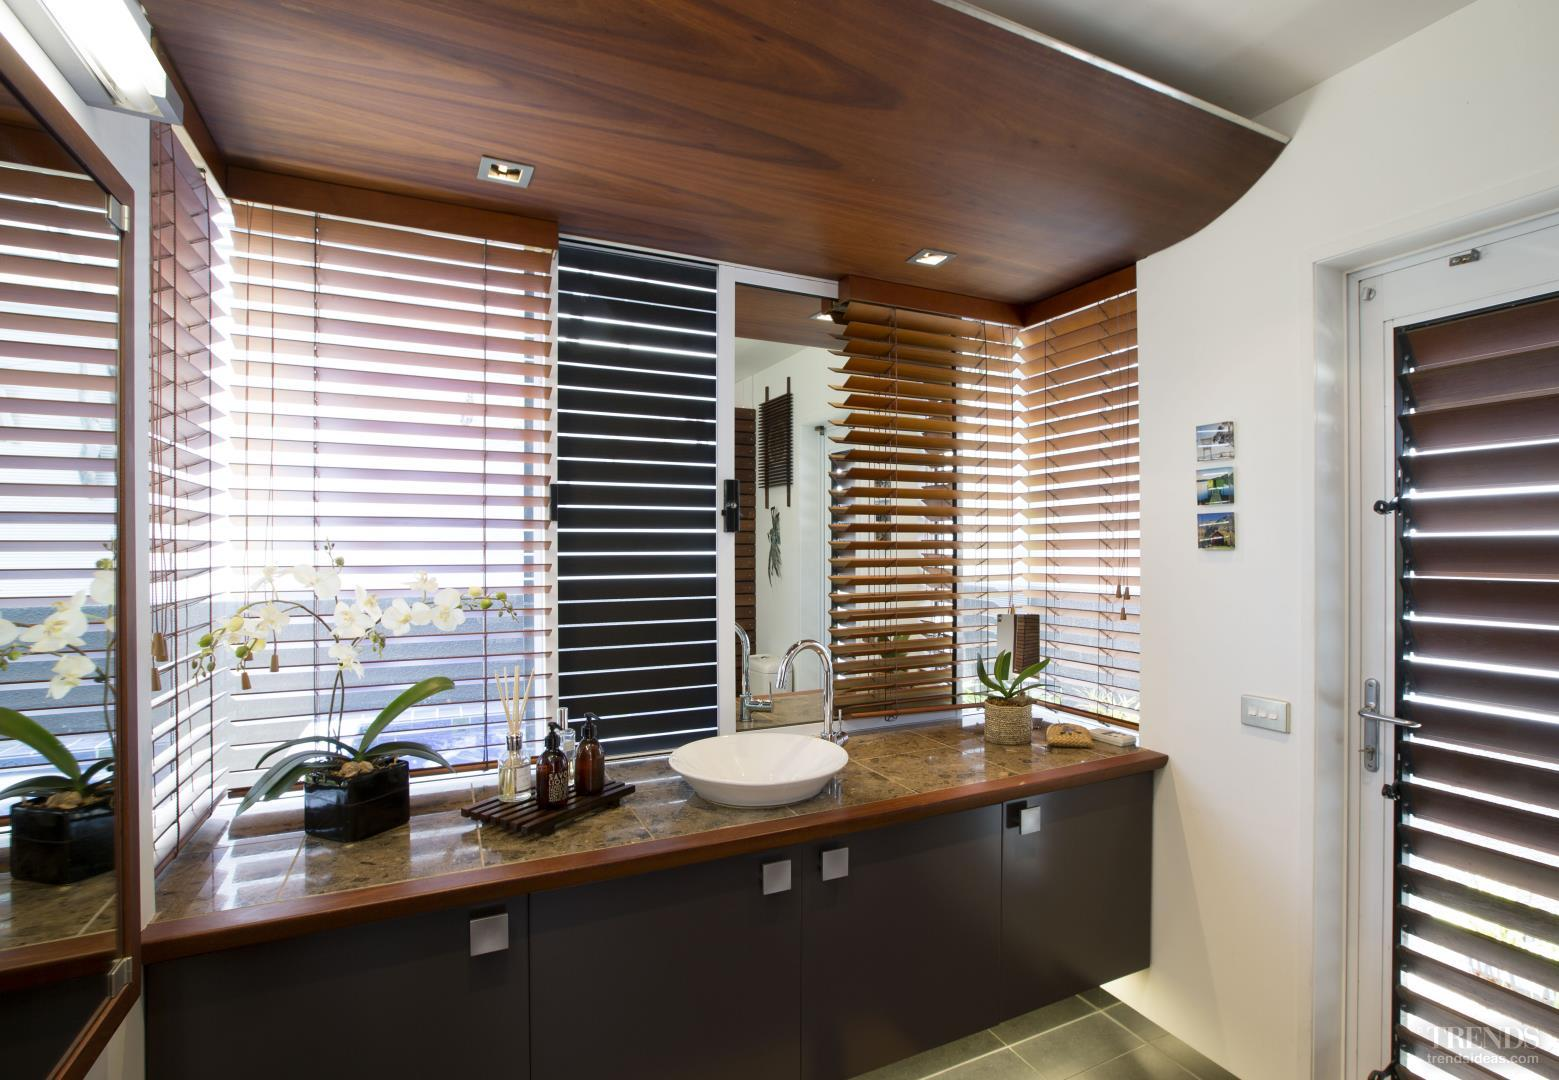 Tropical-look bathroom renovation with wood accents